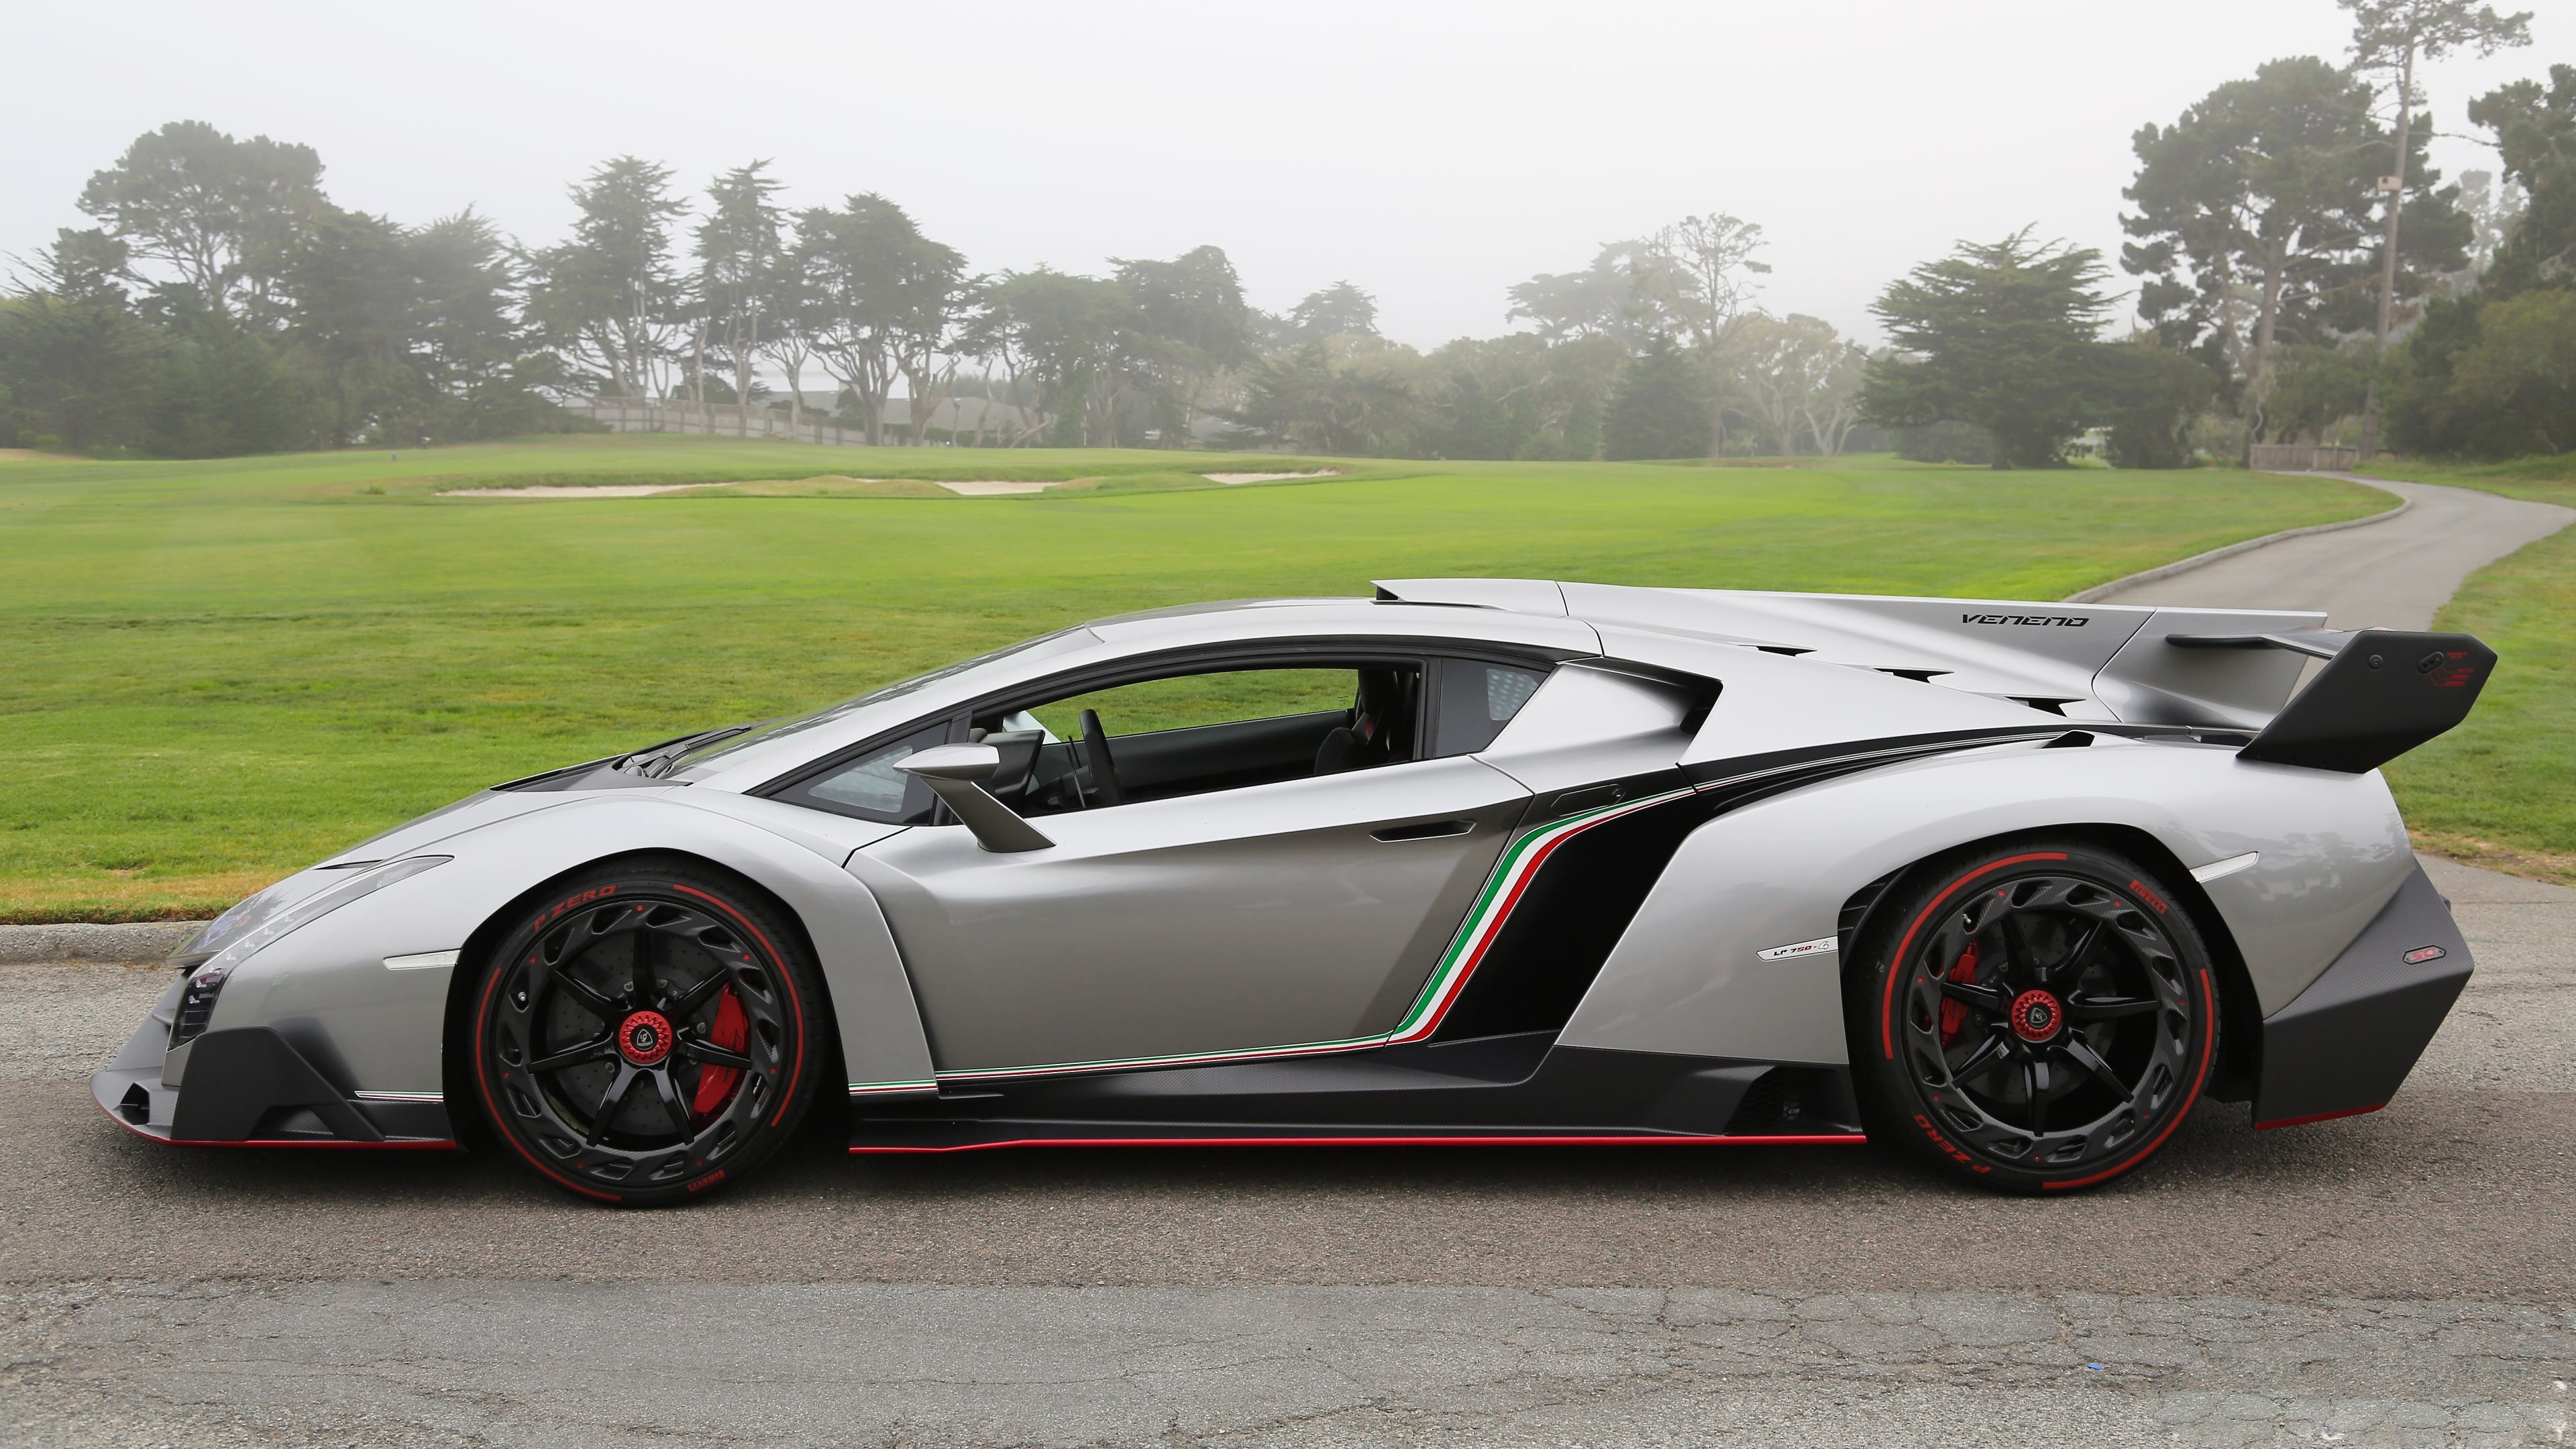 Lamborghini Veneno Coupe >> Wallpaper Lamborghini Veneno, supercar, Lamborghini, sports car, limited edition, speed, side ...